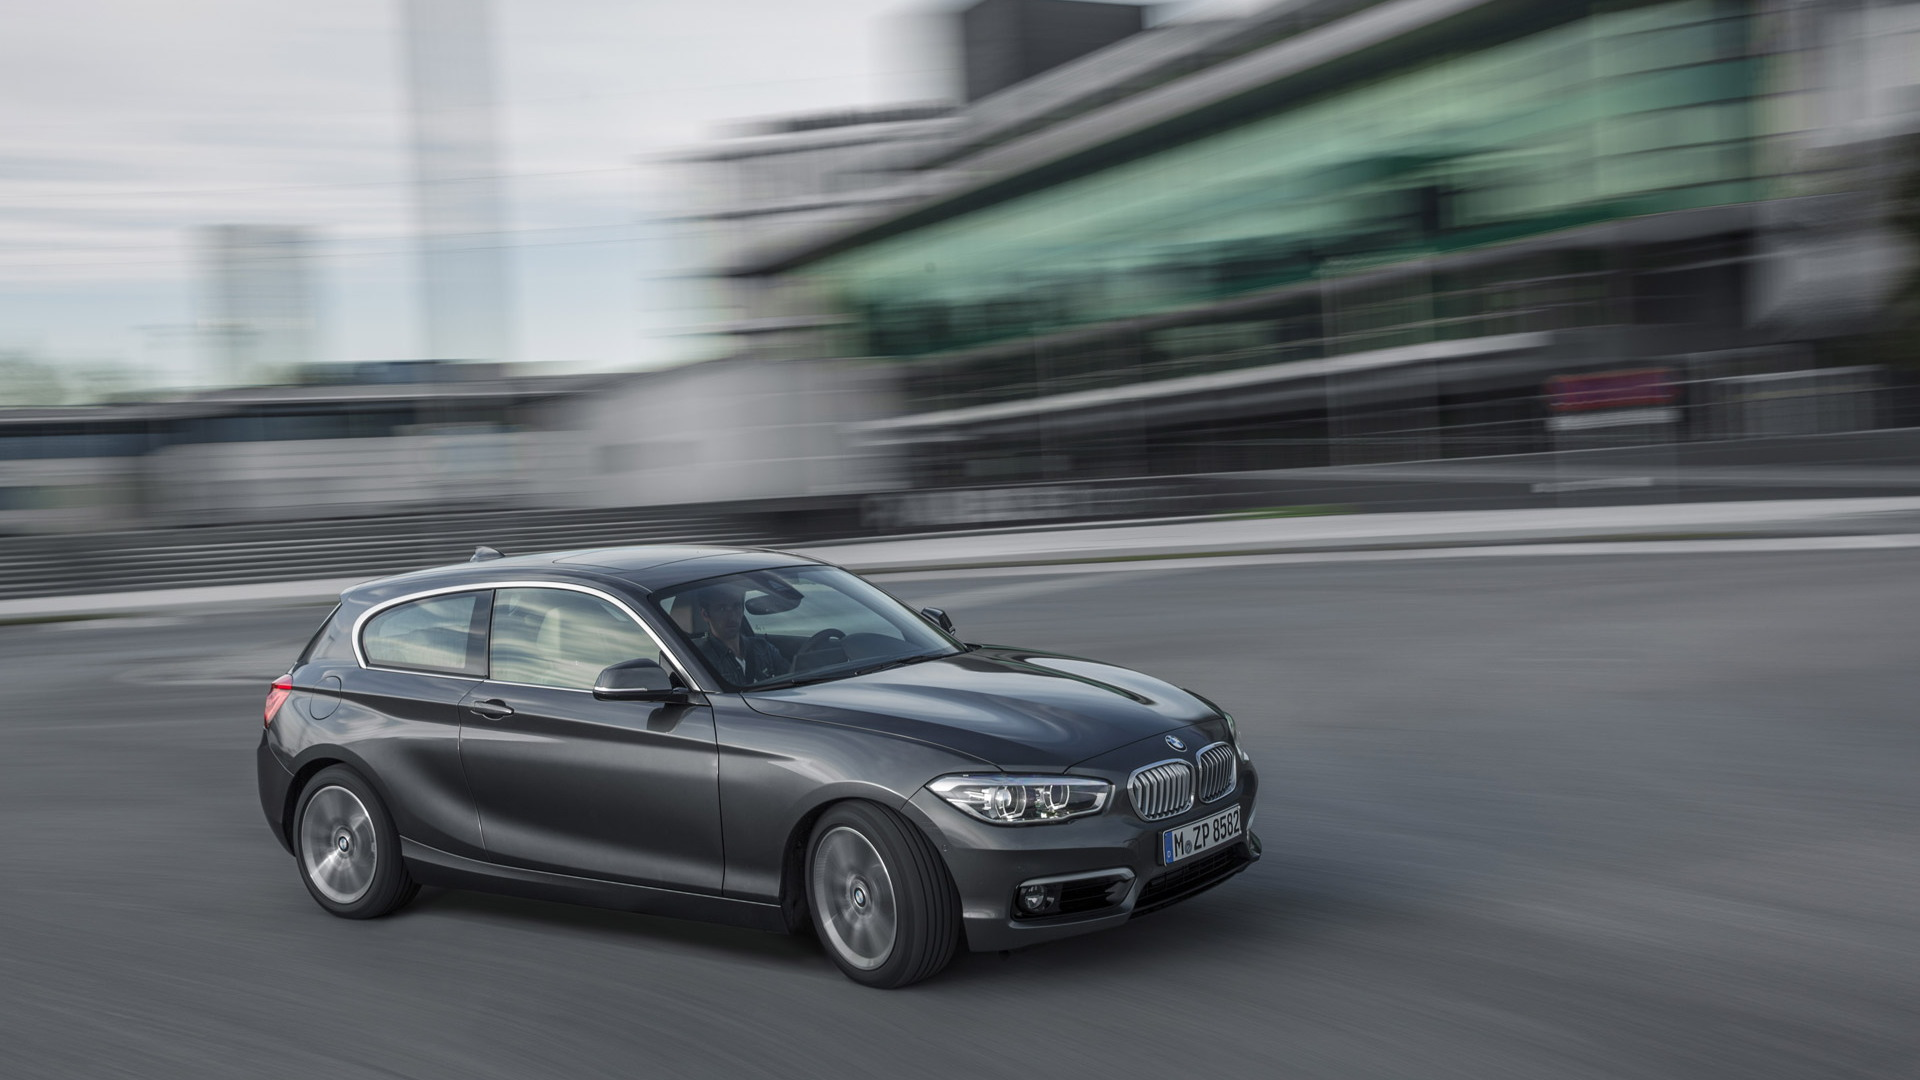 2015 BMW 1-Series Hatchback